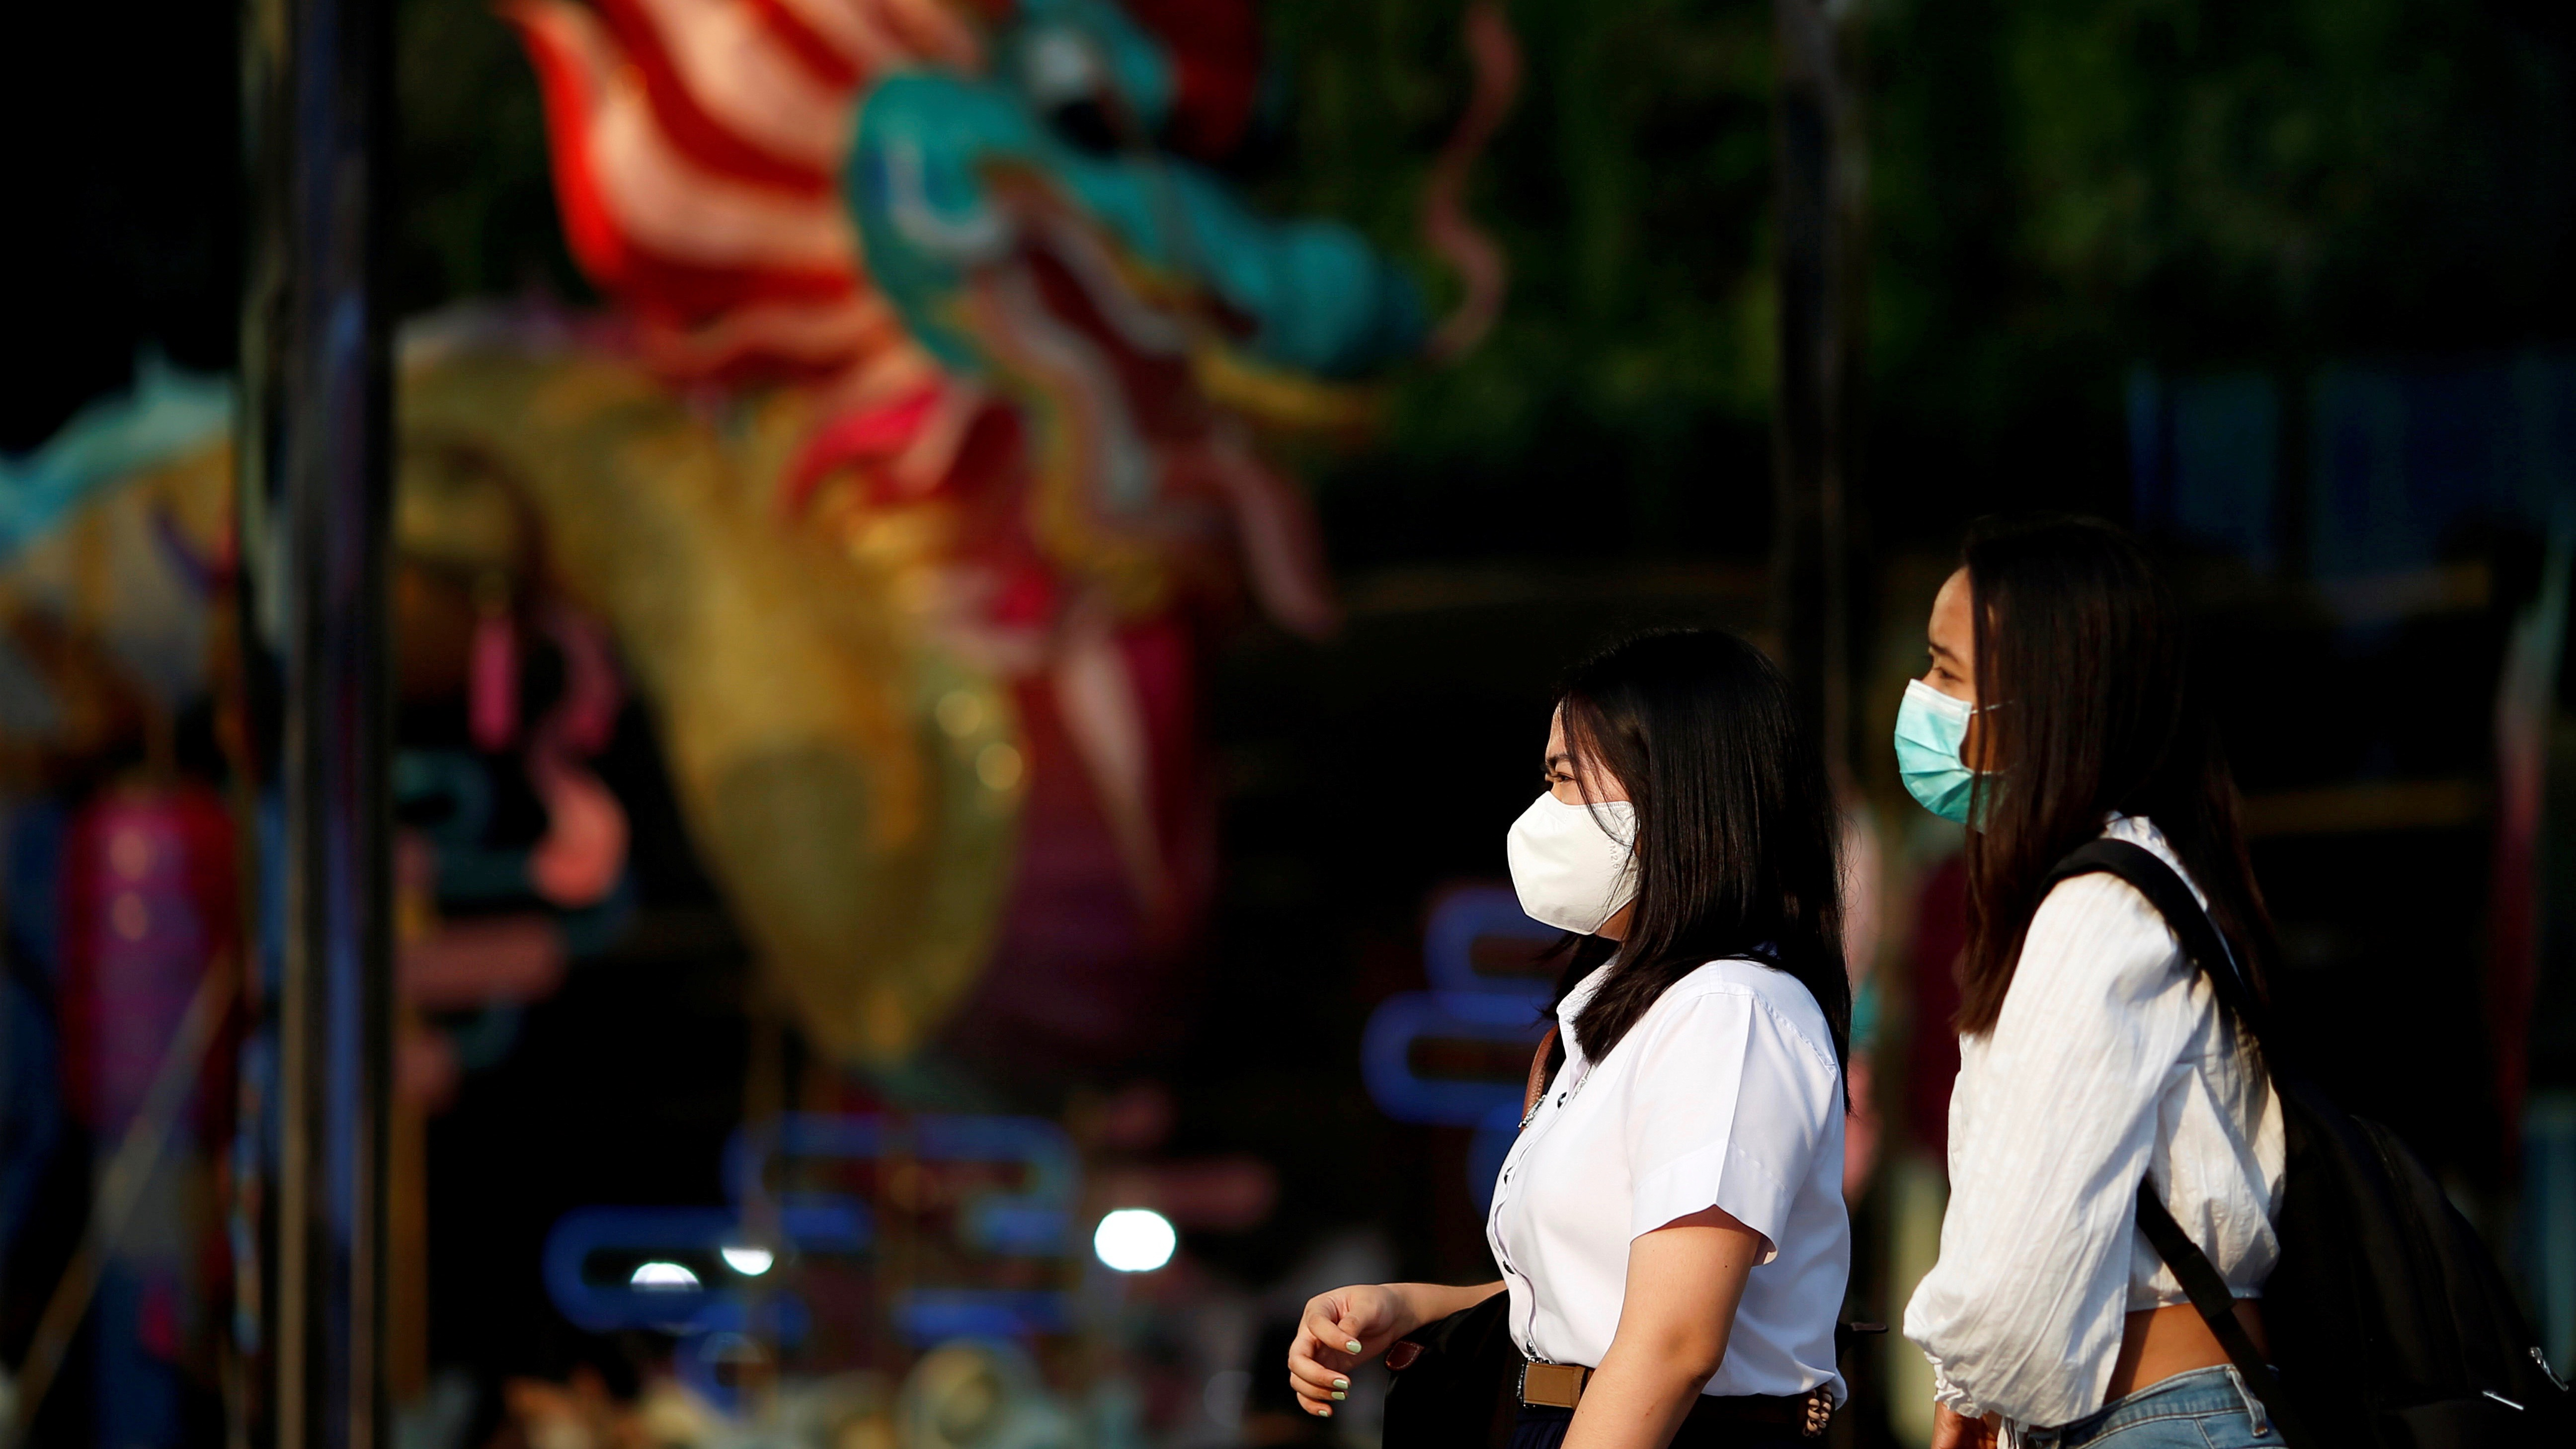 Women wear masks as a preventive measure against the coronavirus outbreak, in Bangkok, Feb. 7, 2020.